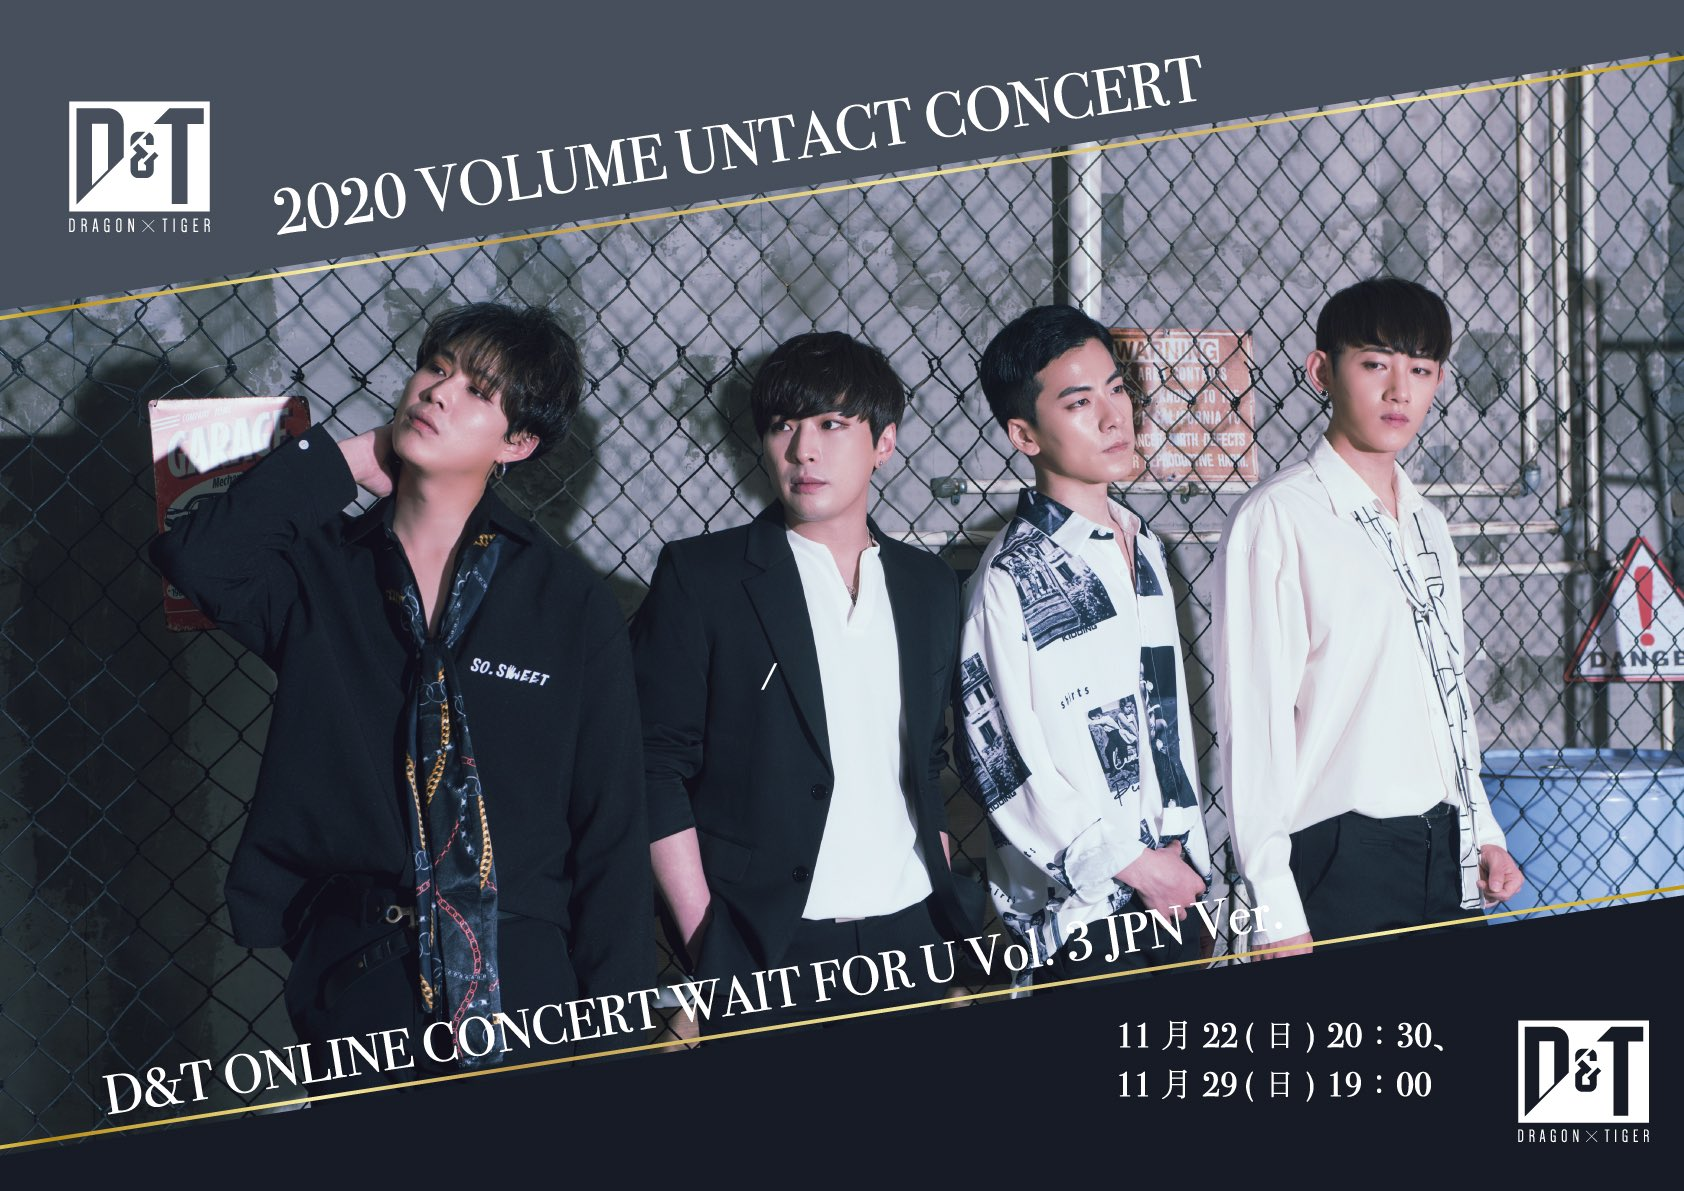 D&T ONLINE CONCERT WAIT FOR U Vol. 3 JPN Ver.